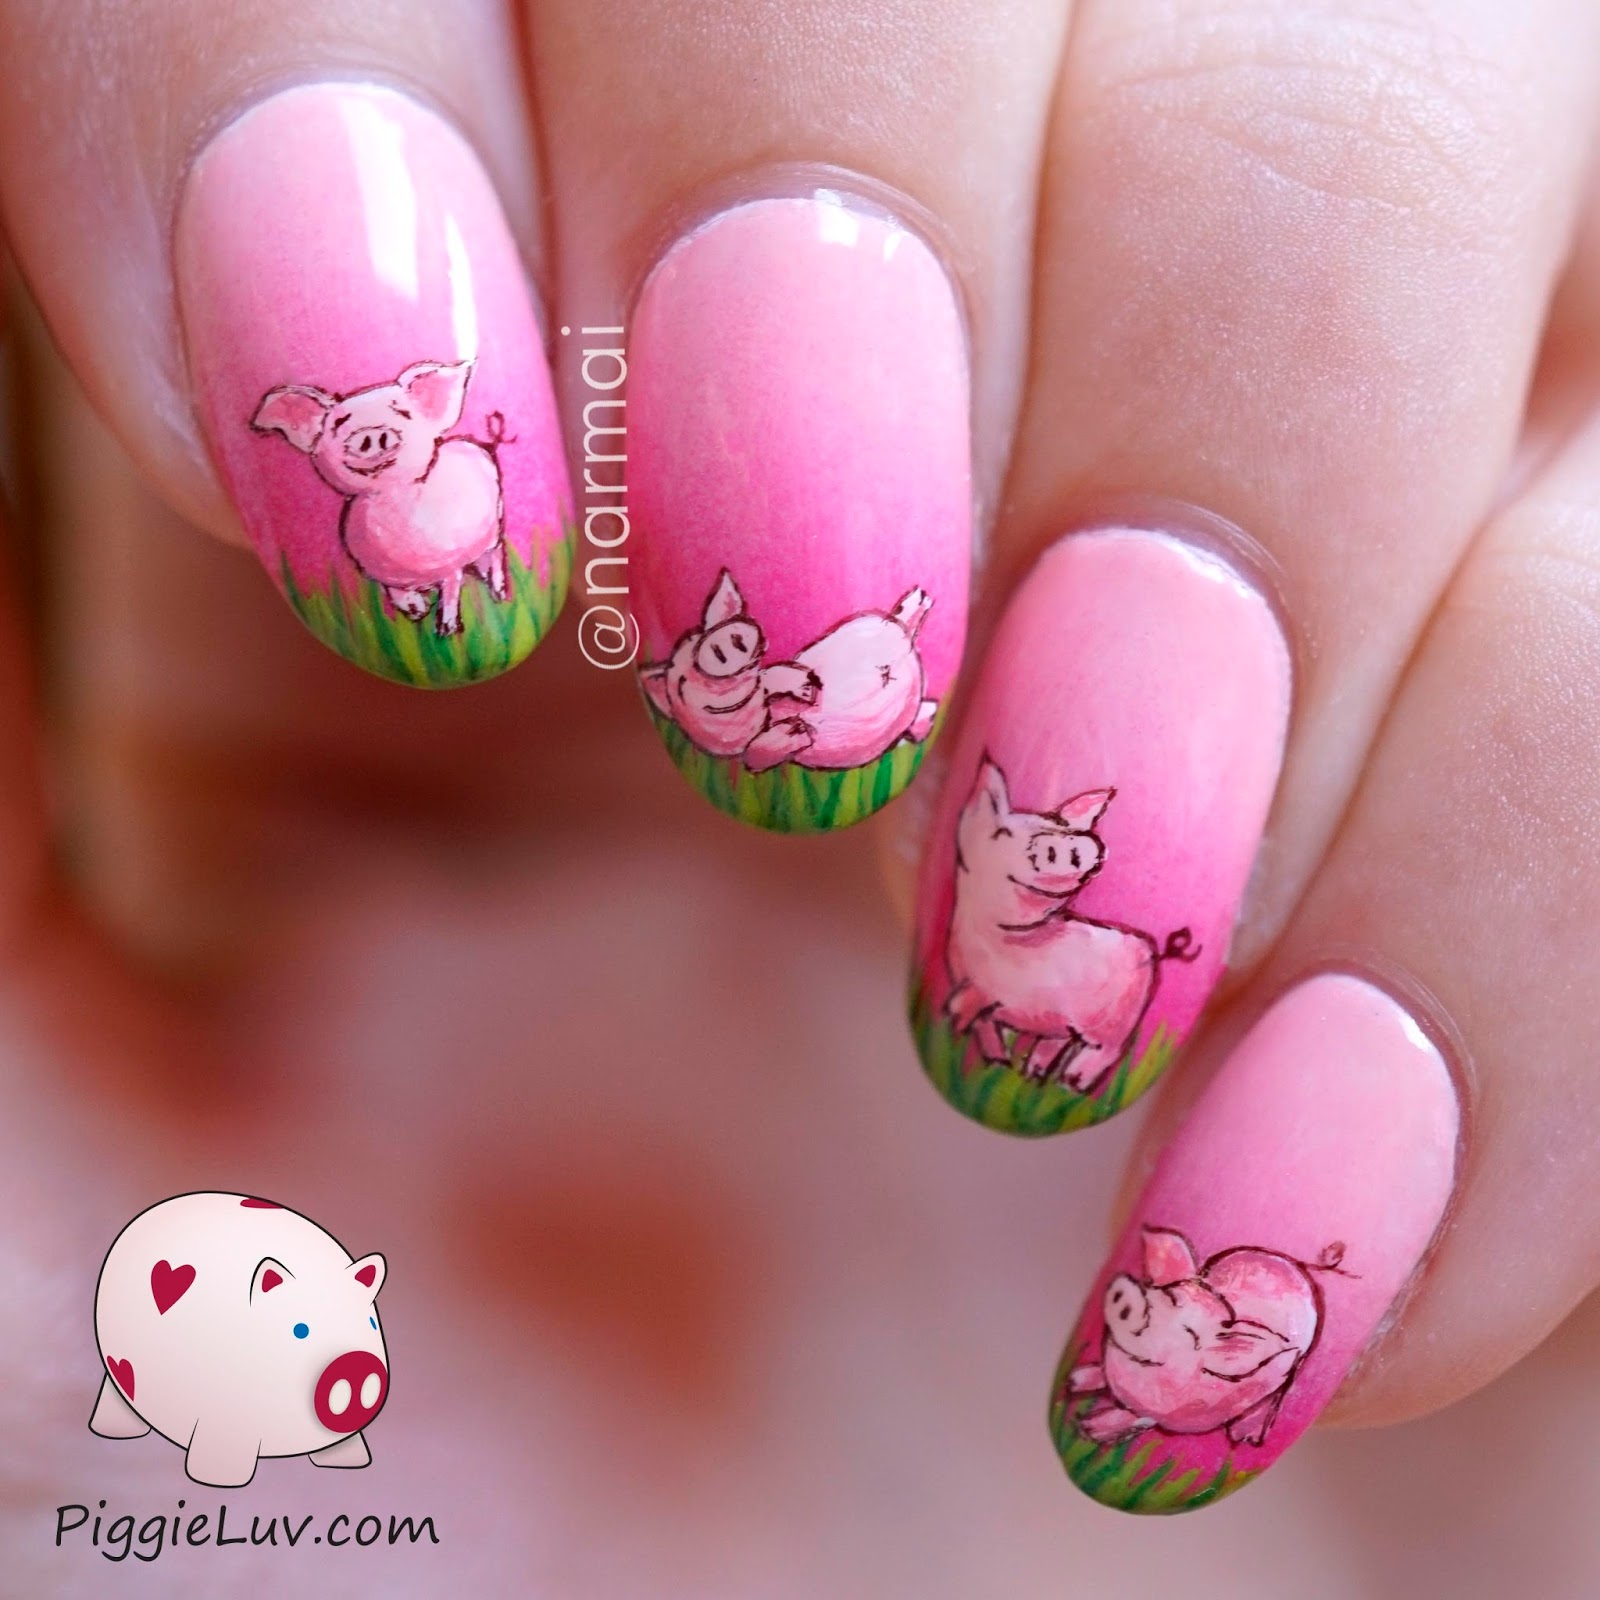 Pig Nail Art: PiggieLuv: Cute Piglet Nail Art For My 3rd Blogiversary